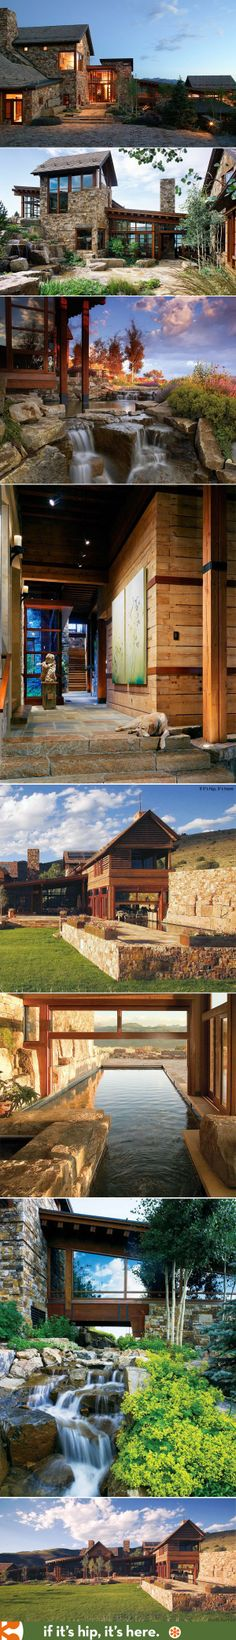 Beautiful home in Colorado's Mountain Star area has waterfalls, mahogany window walls and an indoor/outdoor pool.